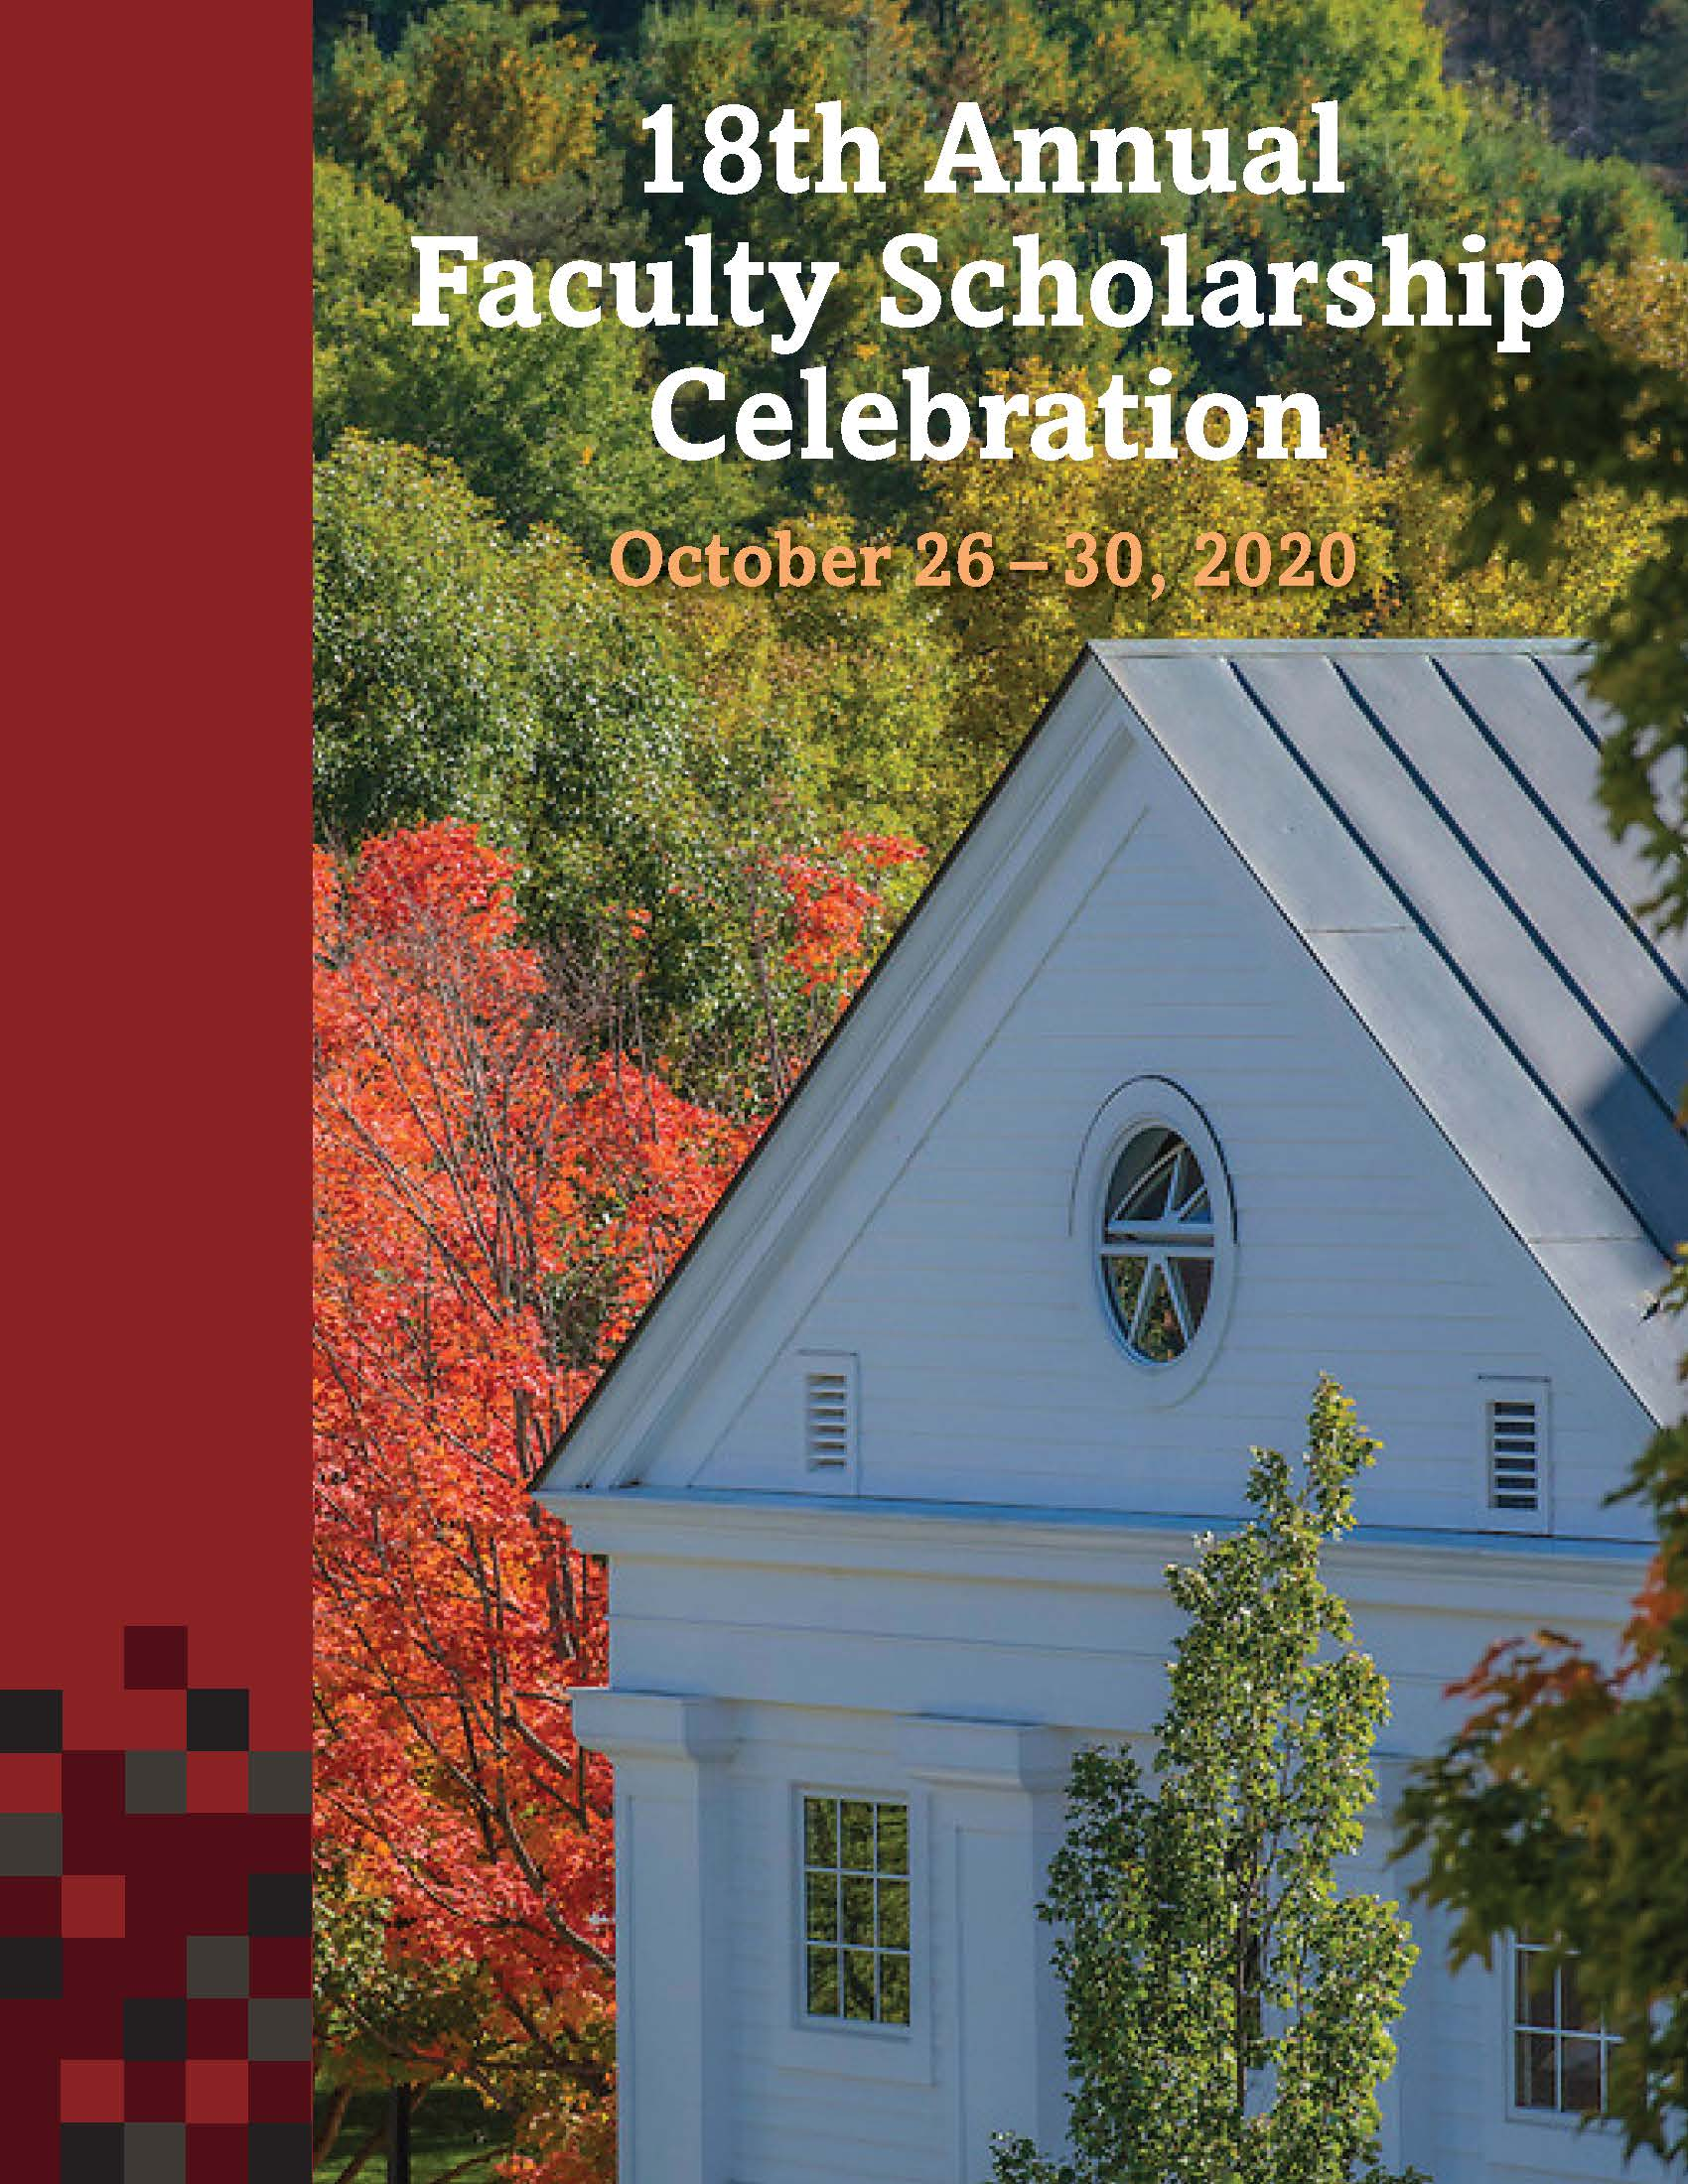 18th Annual Faculty Scholarship Celebration